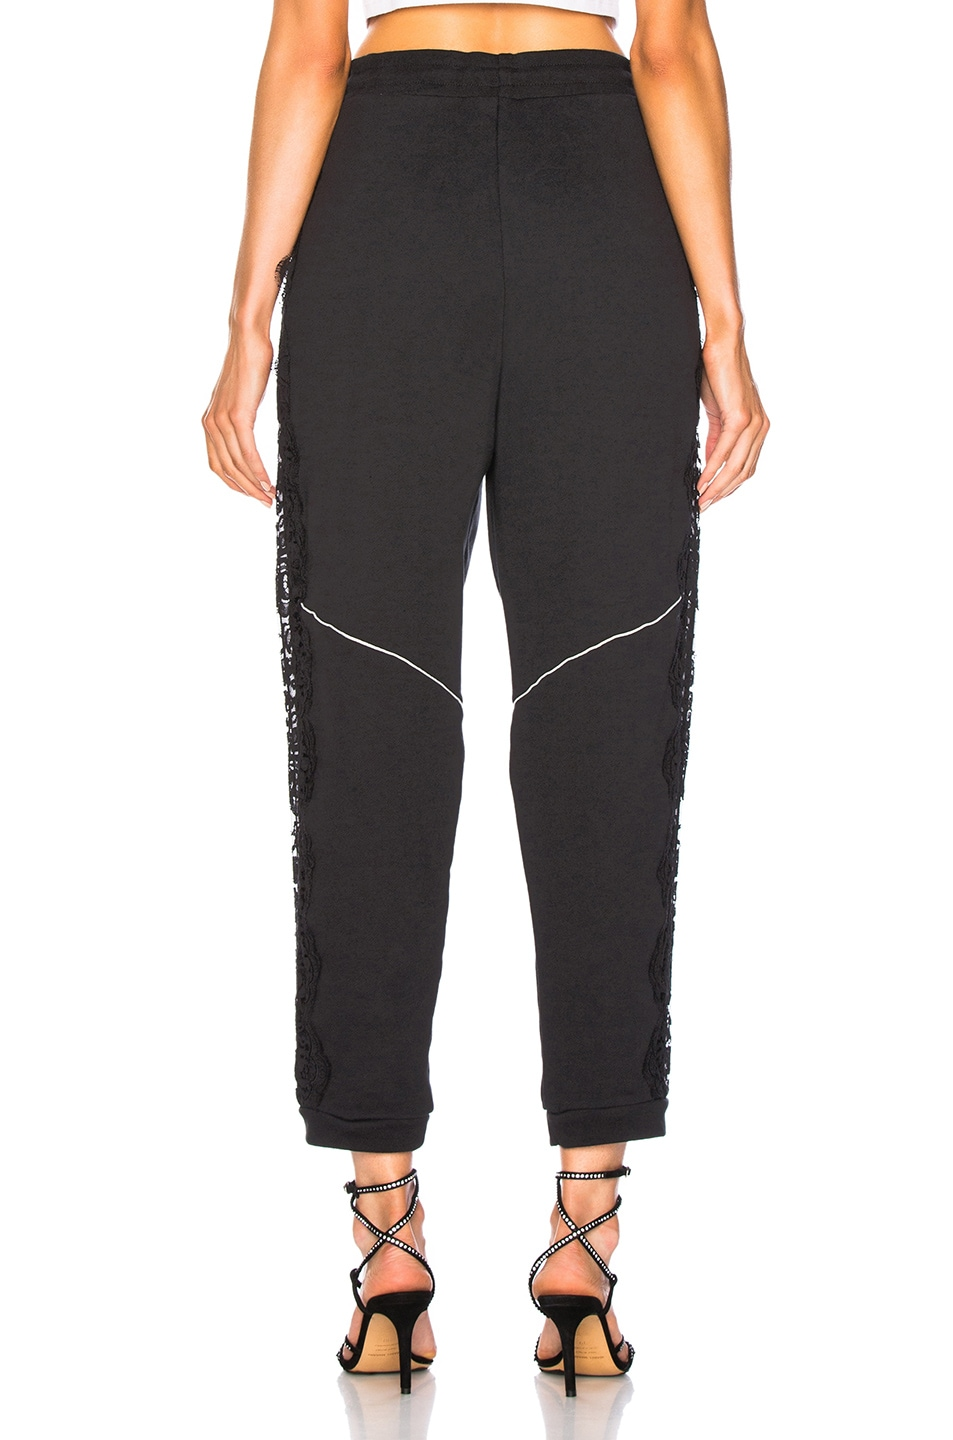 Image 4 of Stella McCartney x adidas Lace Trim Sweatpants in Black